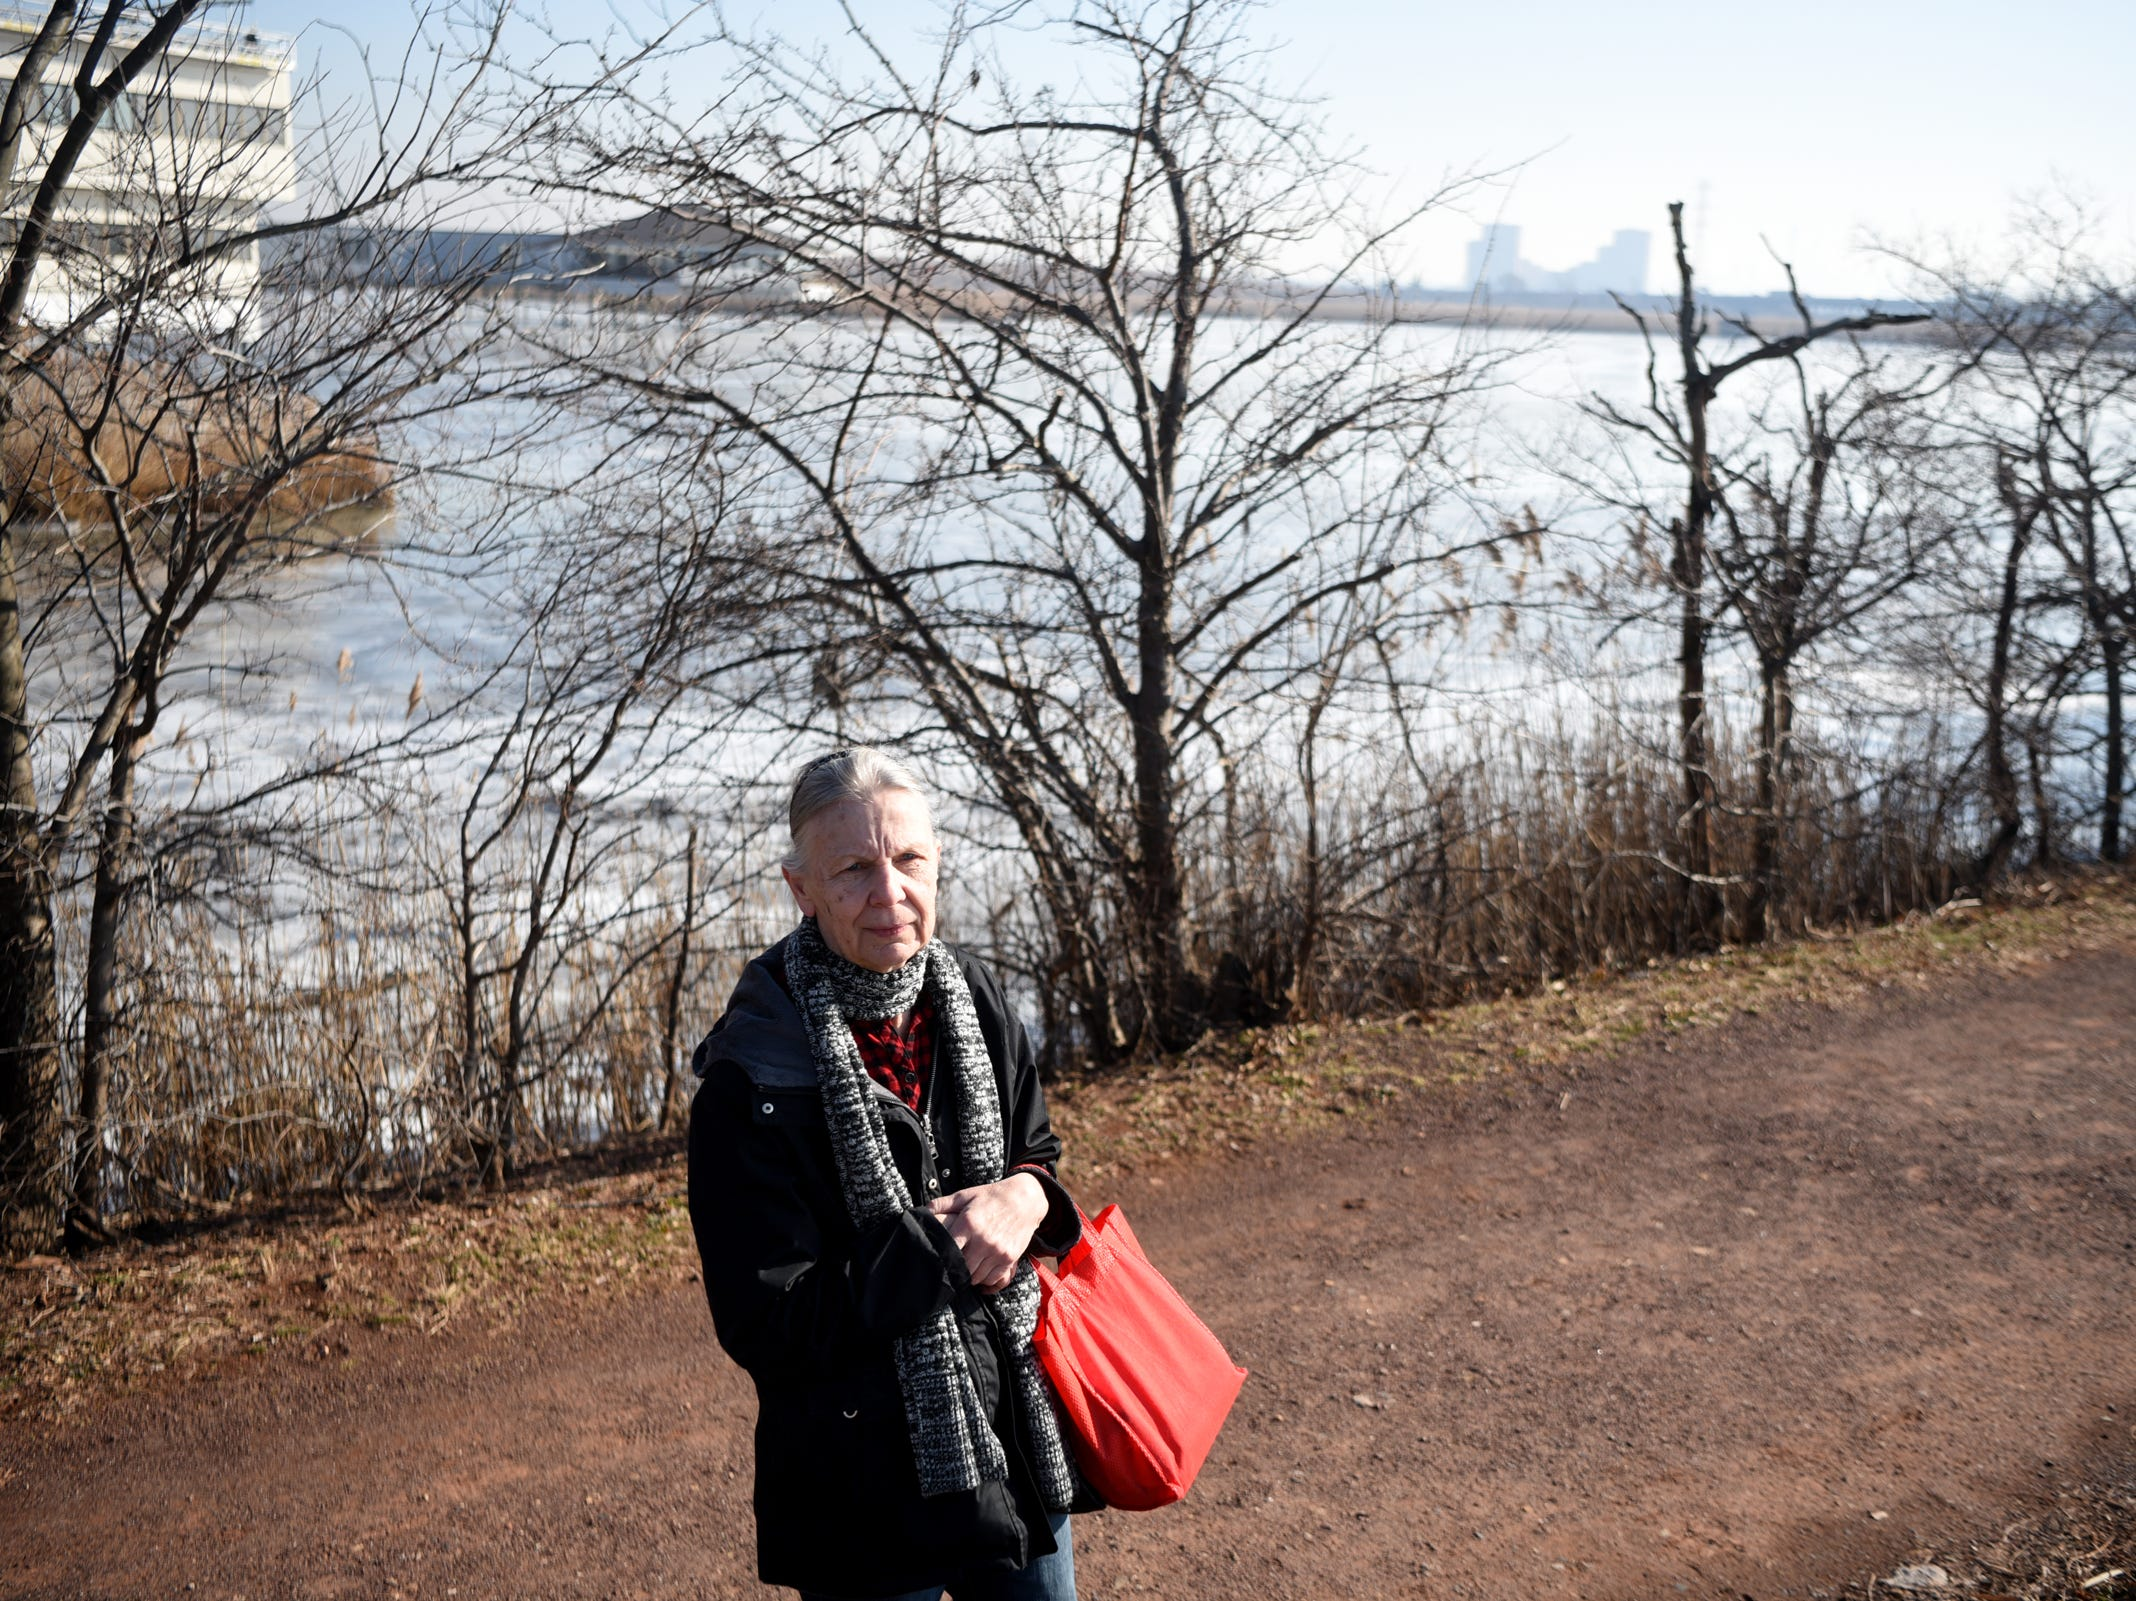 Nancy Galambos of Passaic takes in the view along the Transco Trail in the Lyndhurst Nature Preserve during a wintering birds and nature walk hosted by the Bergen County Audubon Society on Sunday, February 3, 2019.